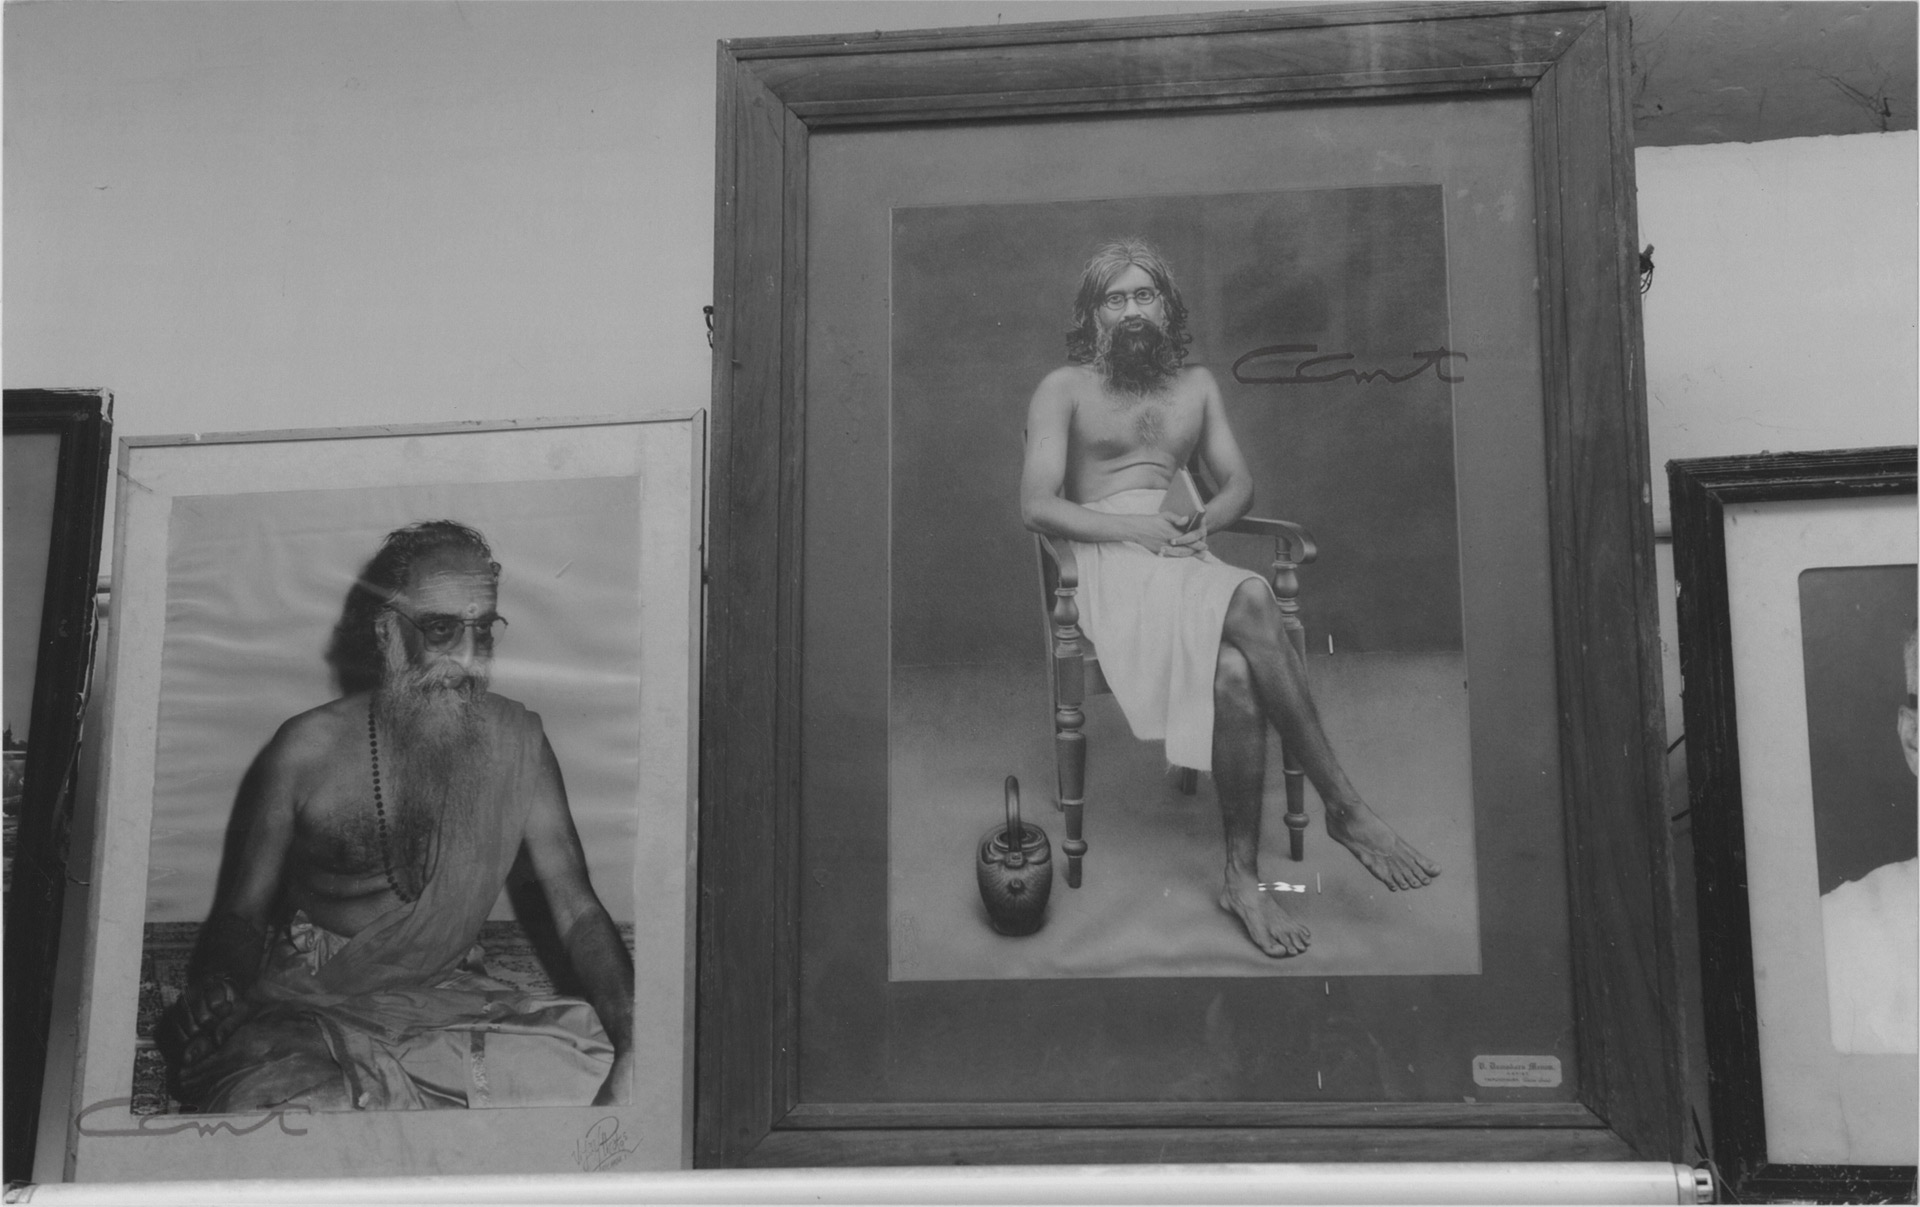 Swami Chinmayananda's photograph adorns the walls of Vivekodayam Boys' High School